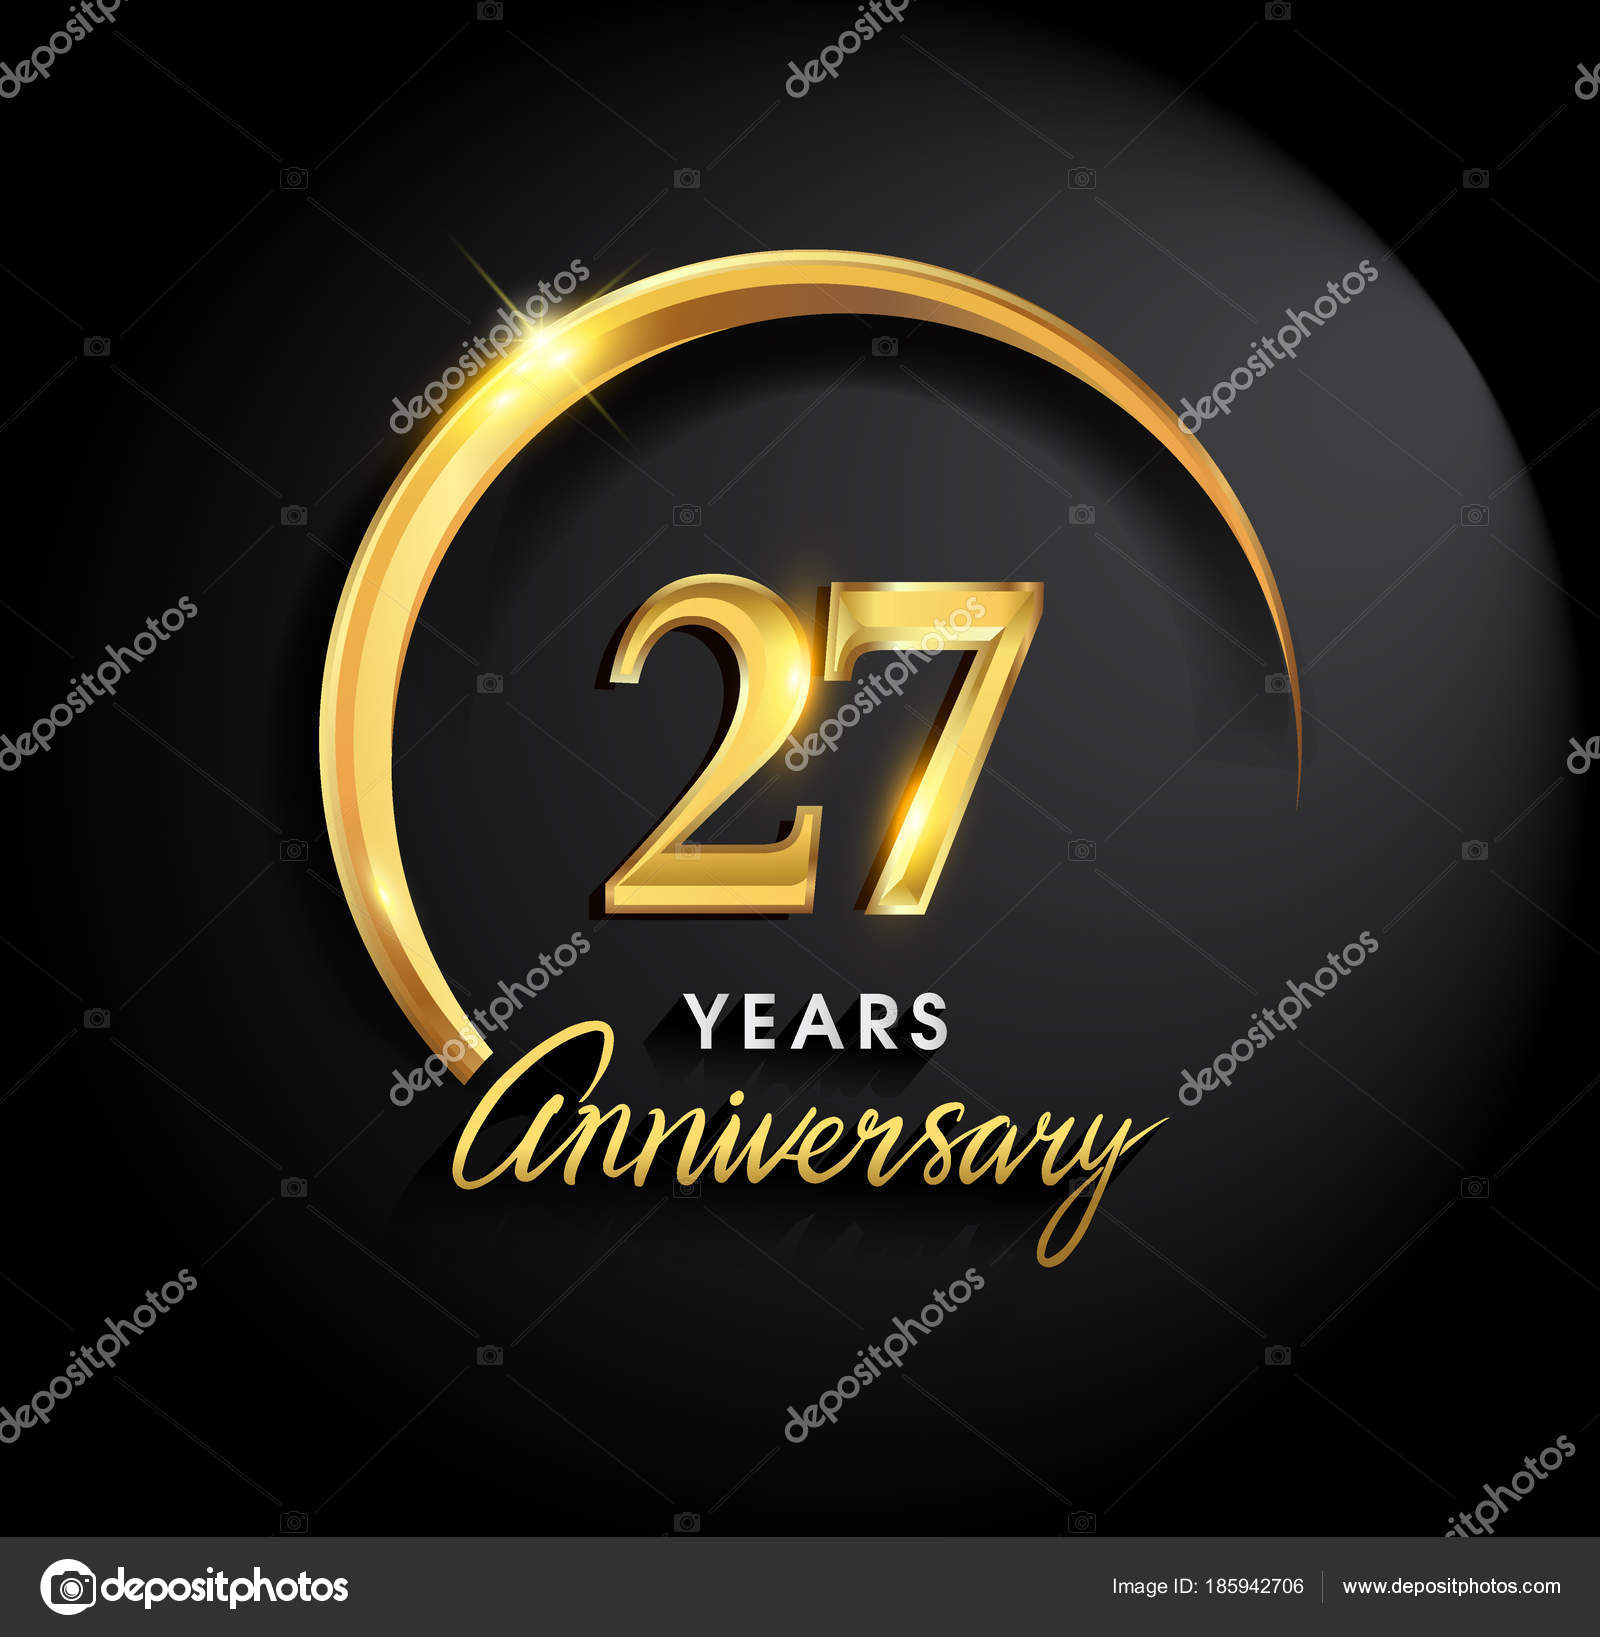 Years anniversary celebration anniversary logo ring elegance golden 27 years anniversary celebration anniversary logo with ring and elegance golden color on black background vector design for celebration invitation card biocorpaavc Images